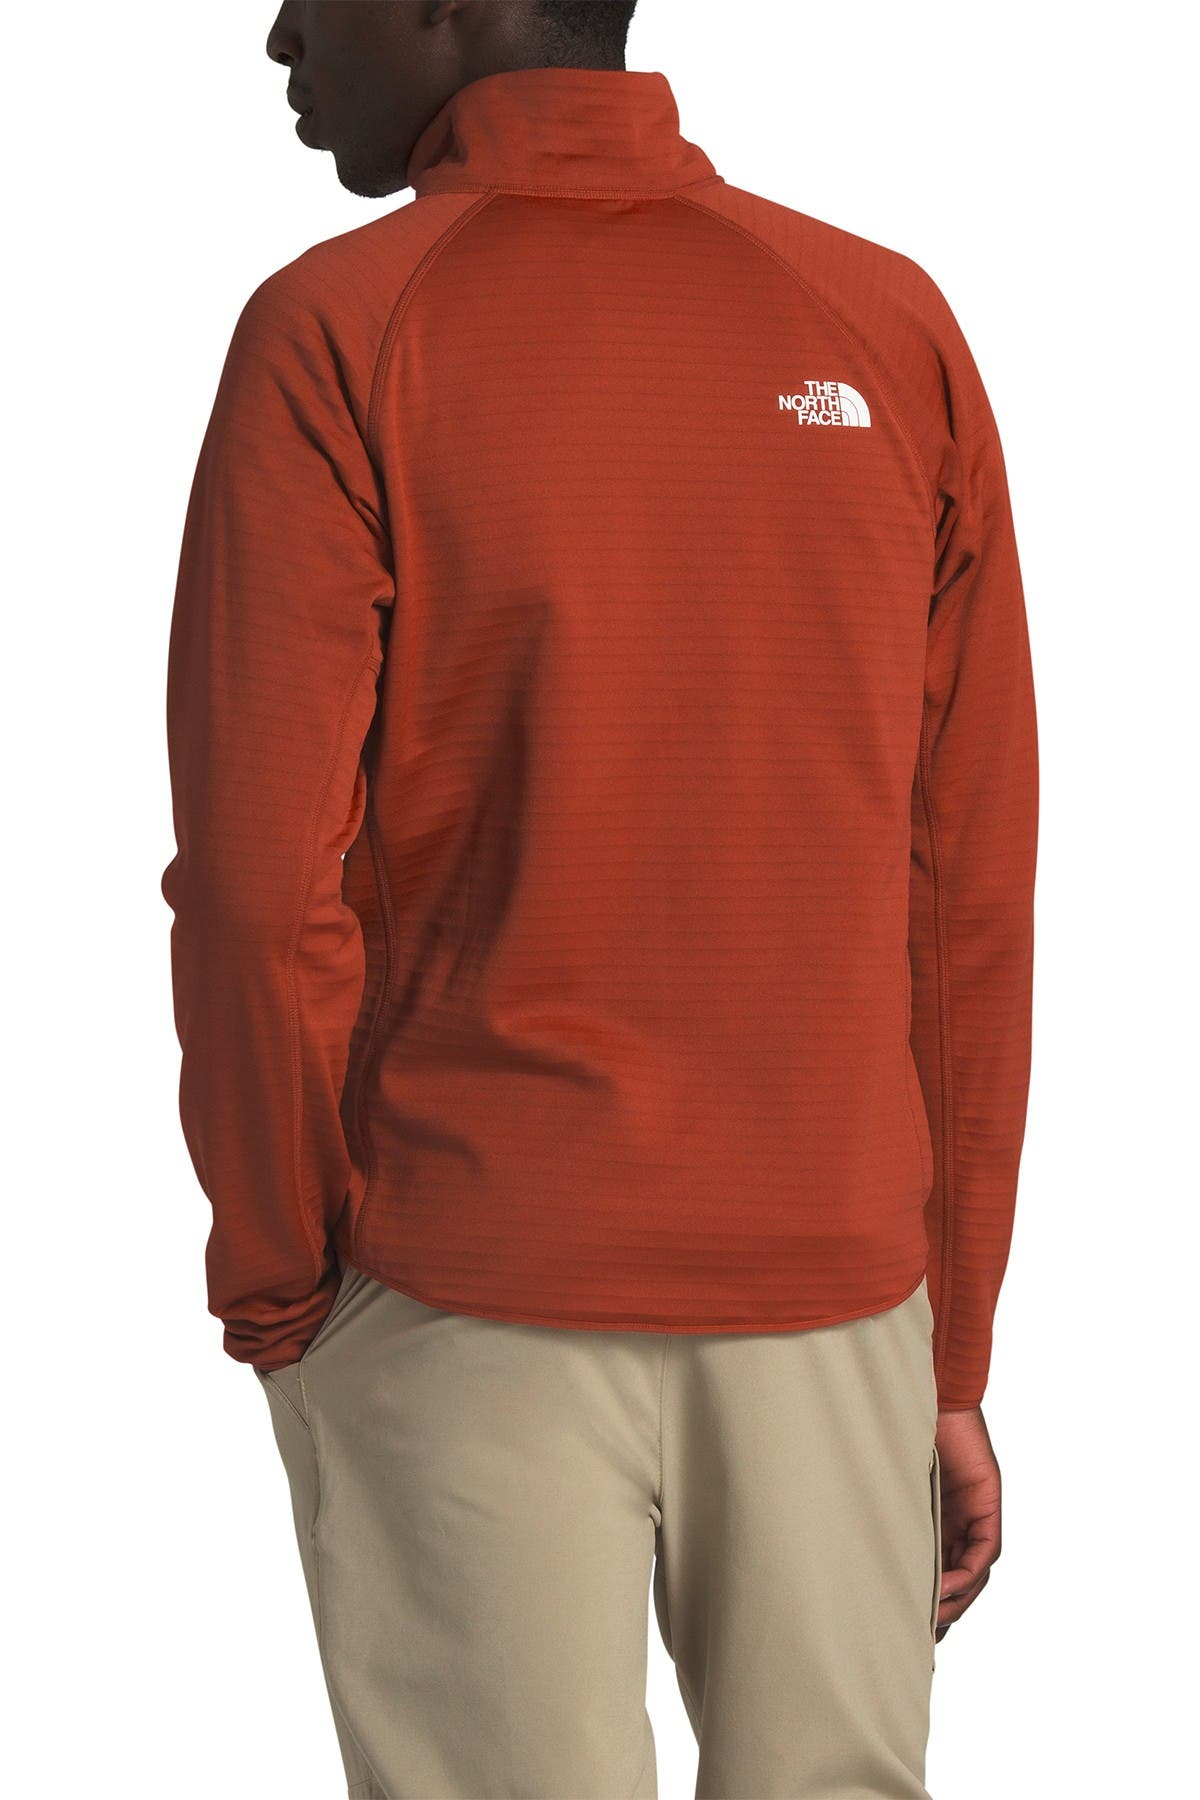 Image of The North Face Echork Textured Zip Jacket